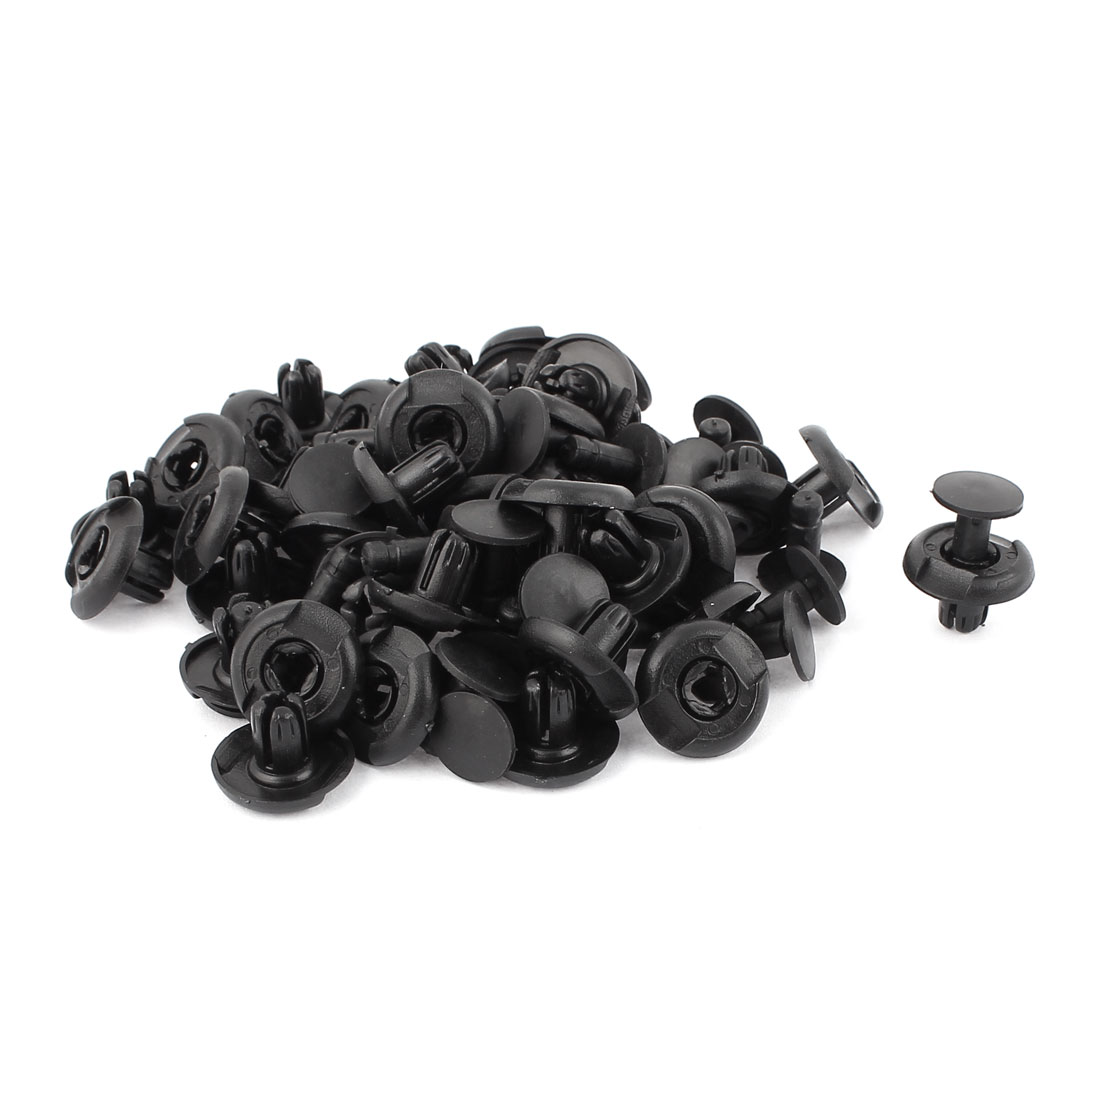 40Pcs 9mm Hole Plastic Rivet Push Type Fit Panel Trim Clips for Car Door Cards